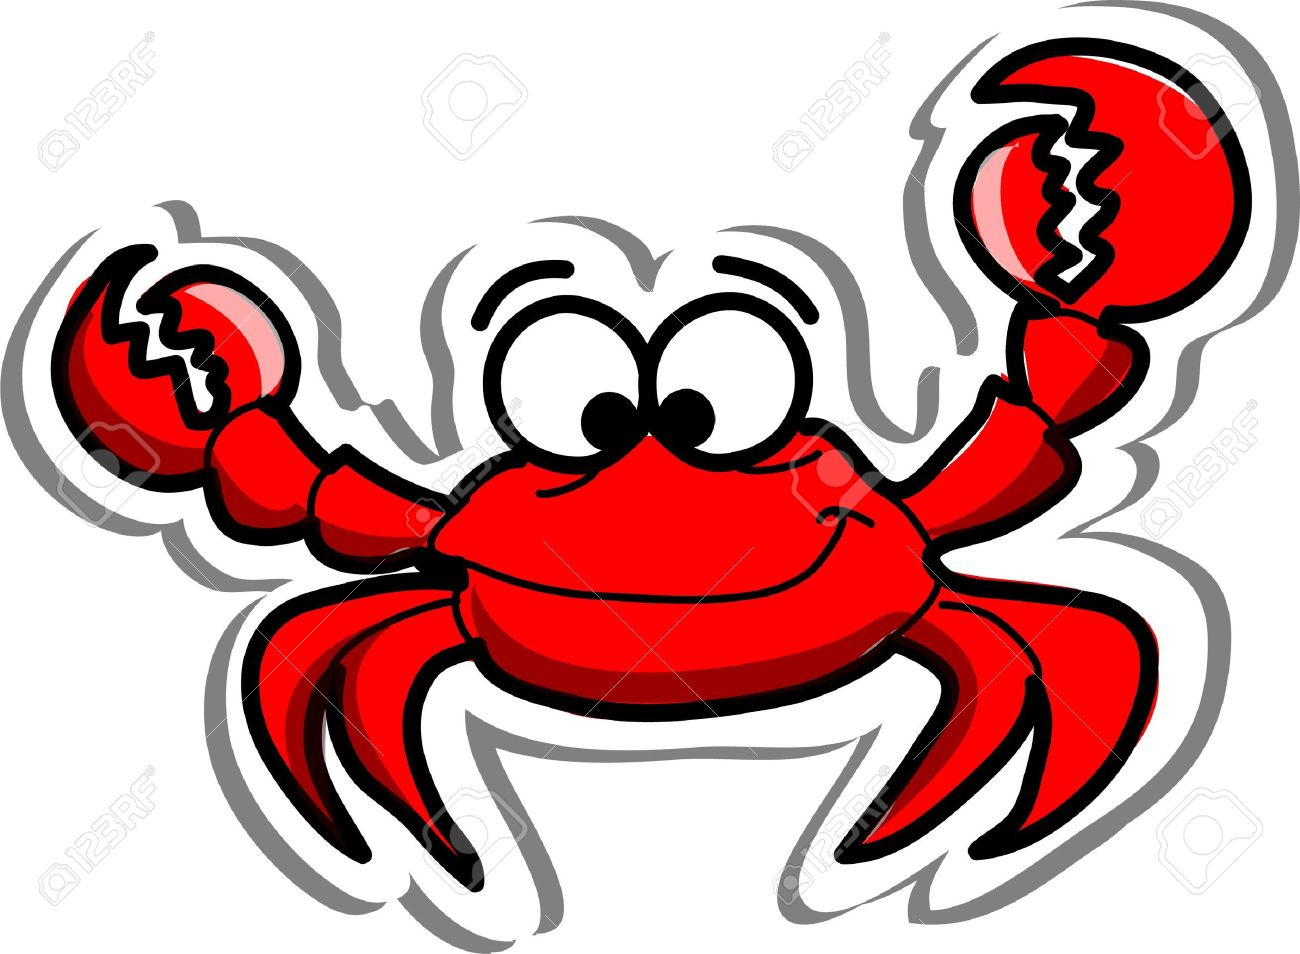 crab cartoon stock photos royalty free crab cartoon images and